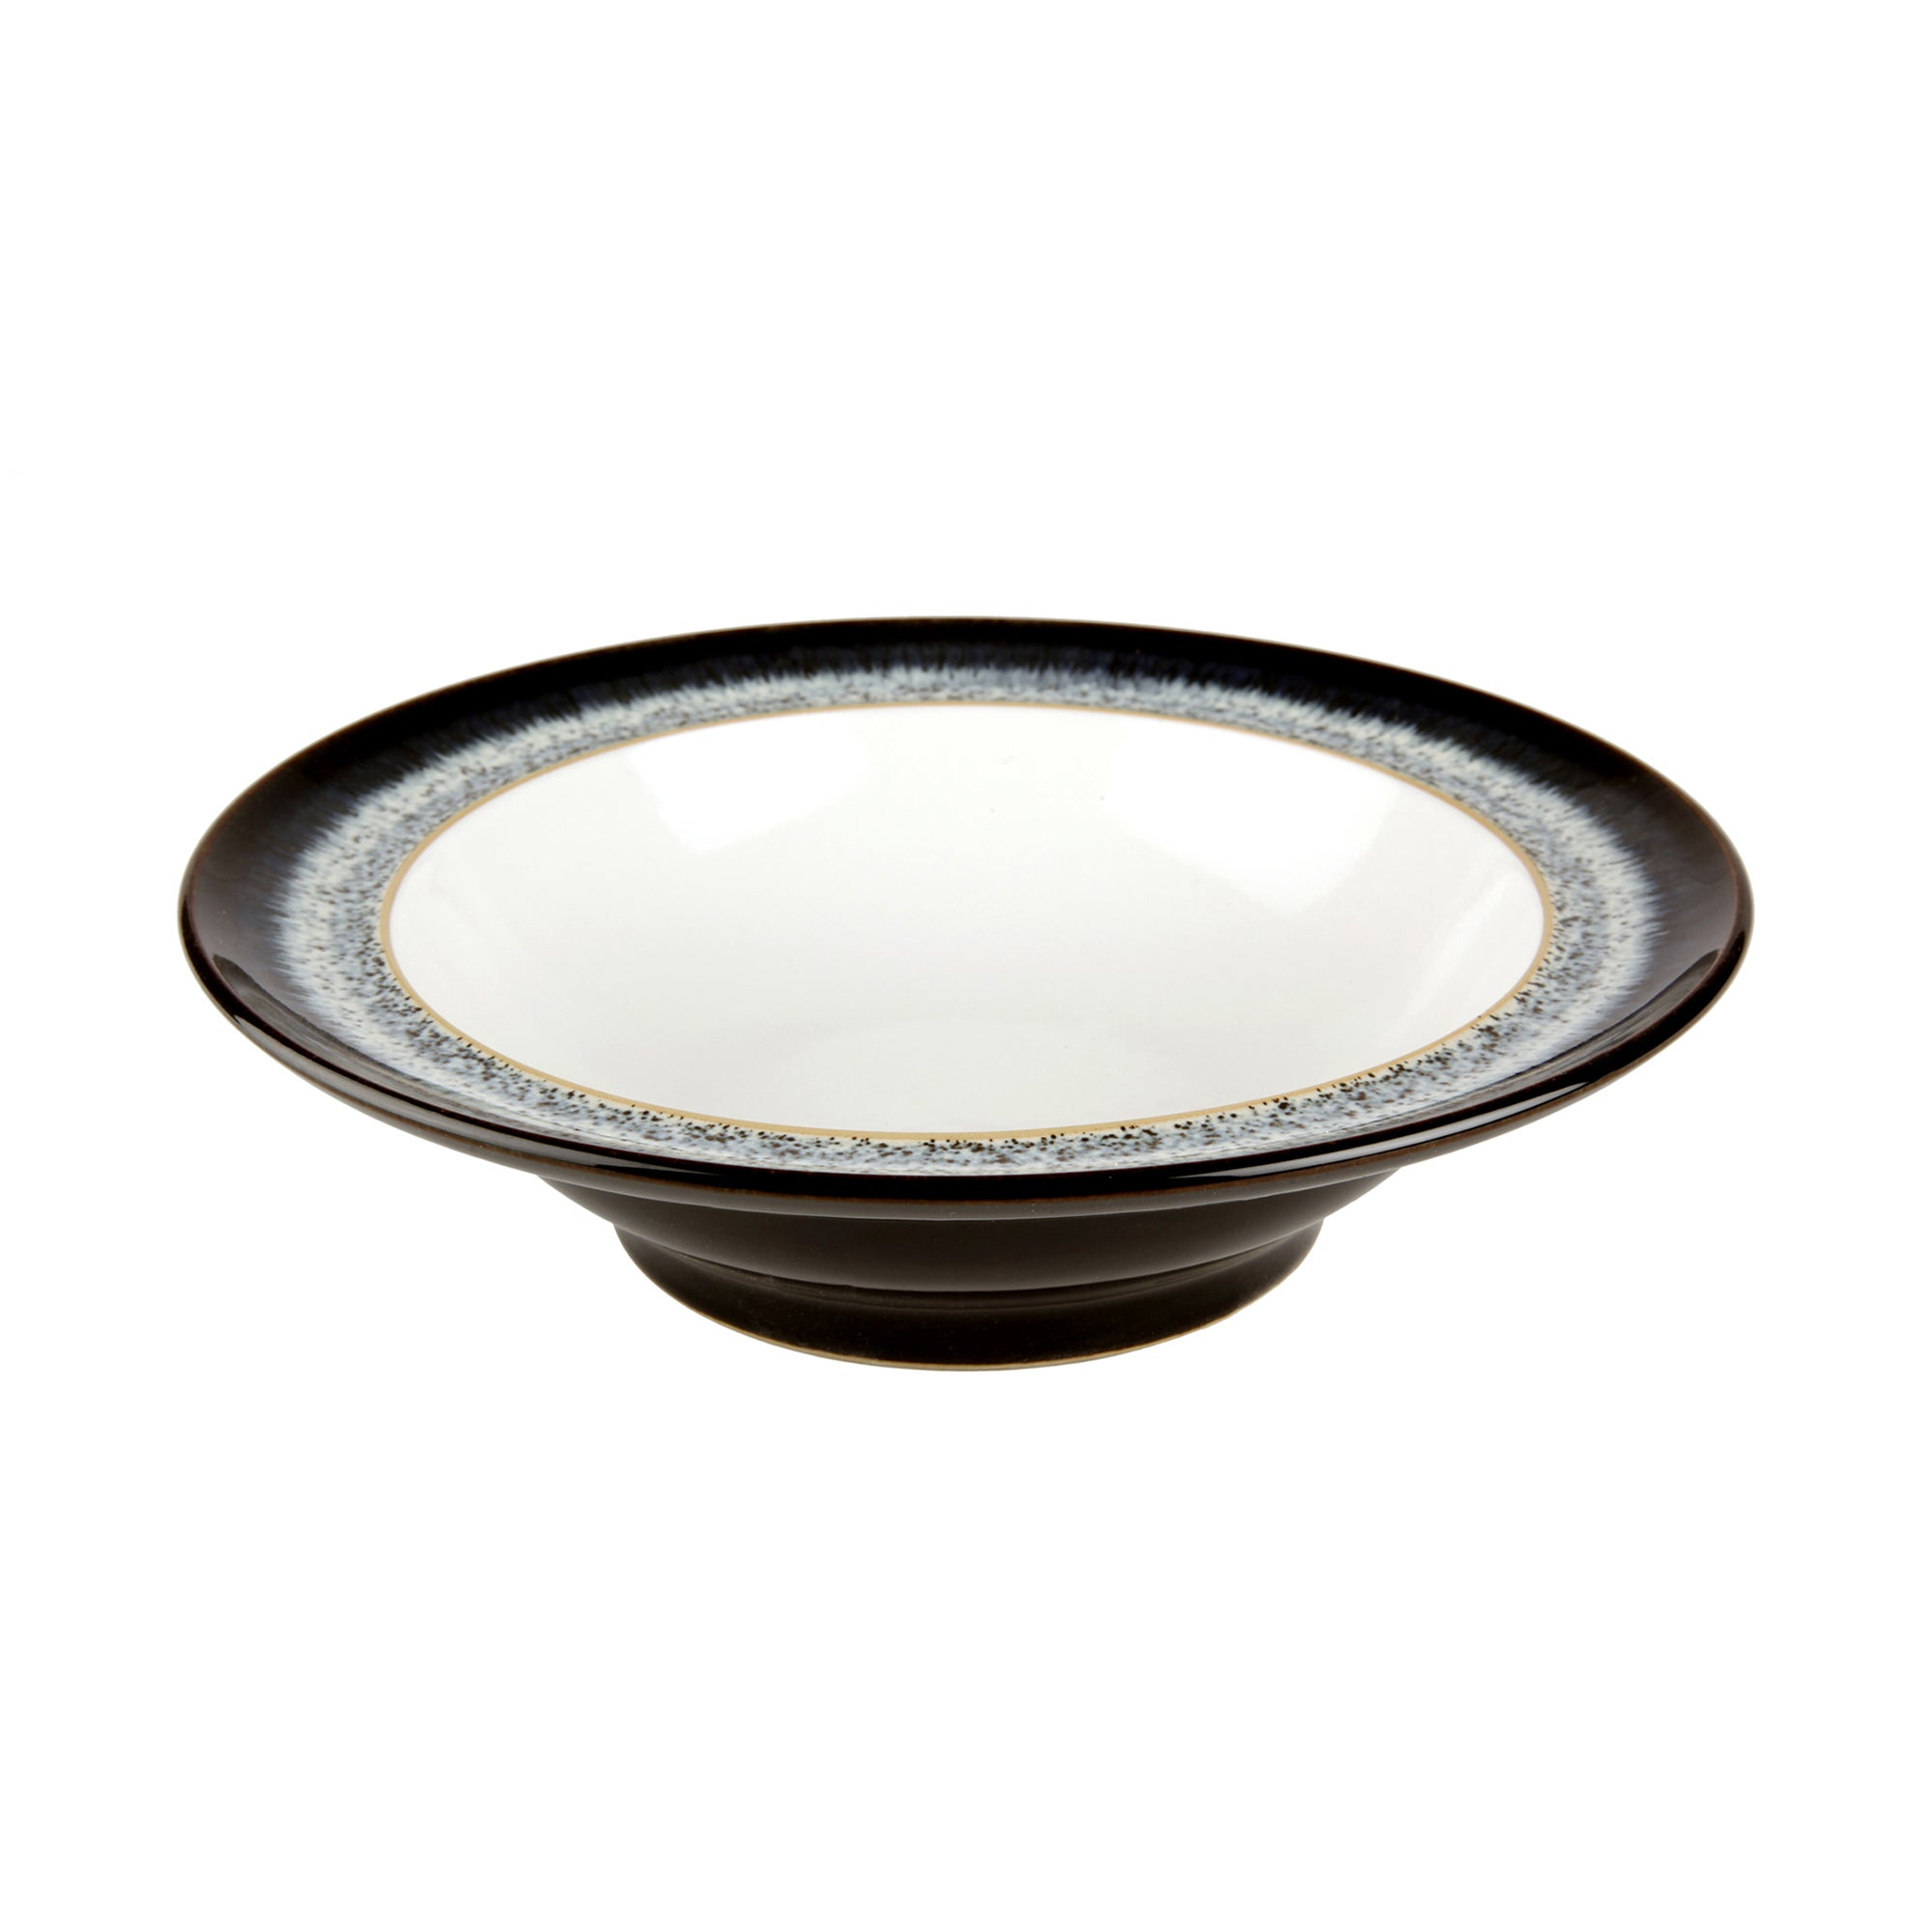 Image of Denby Halo Wide Rimmed Bowl Black